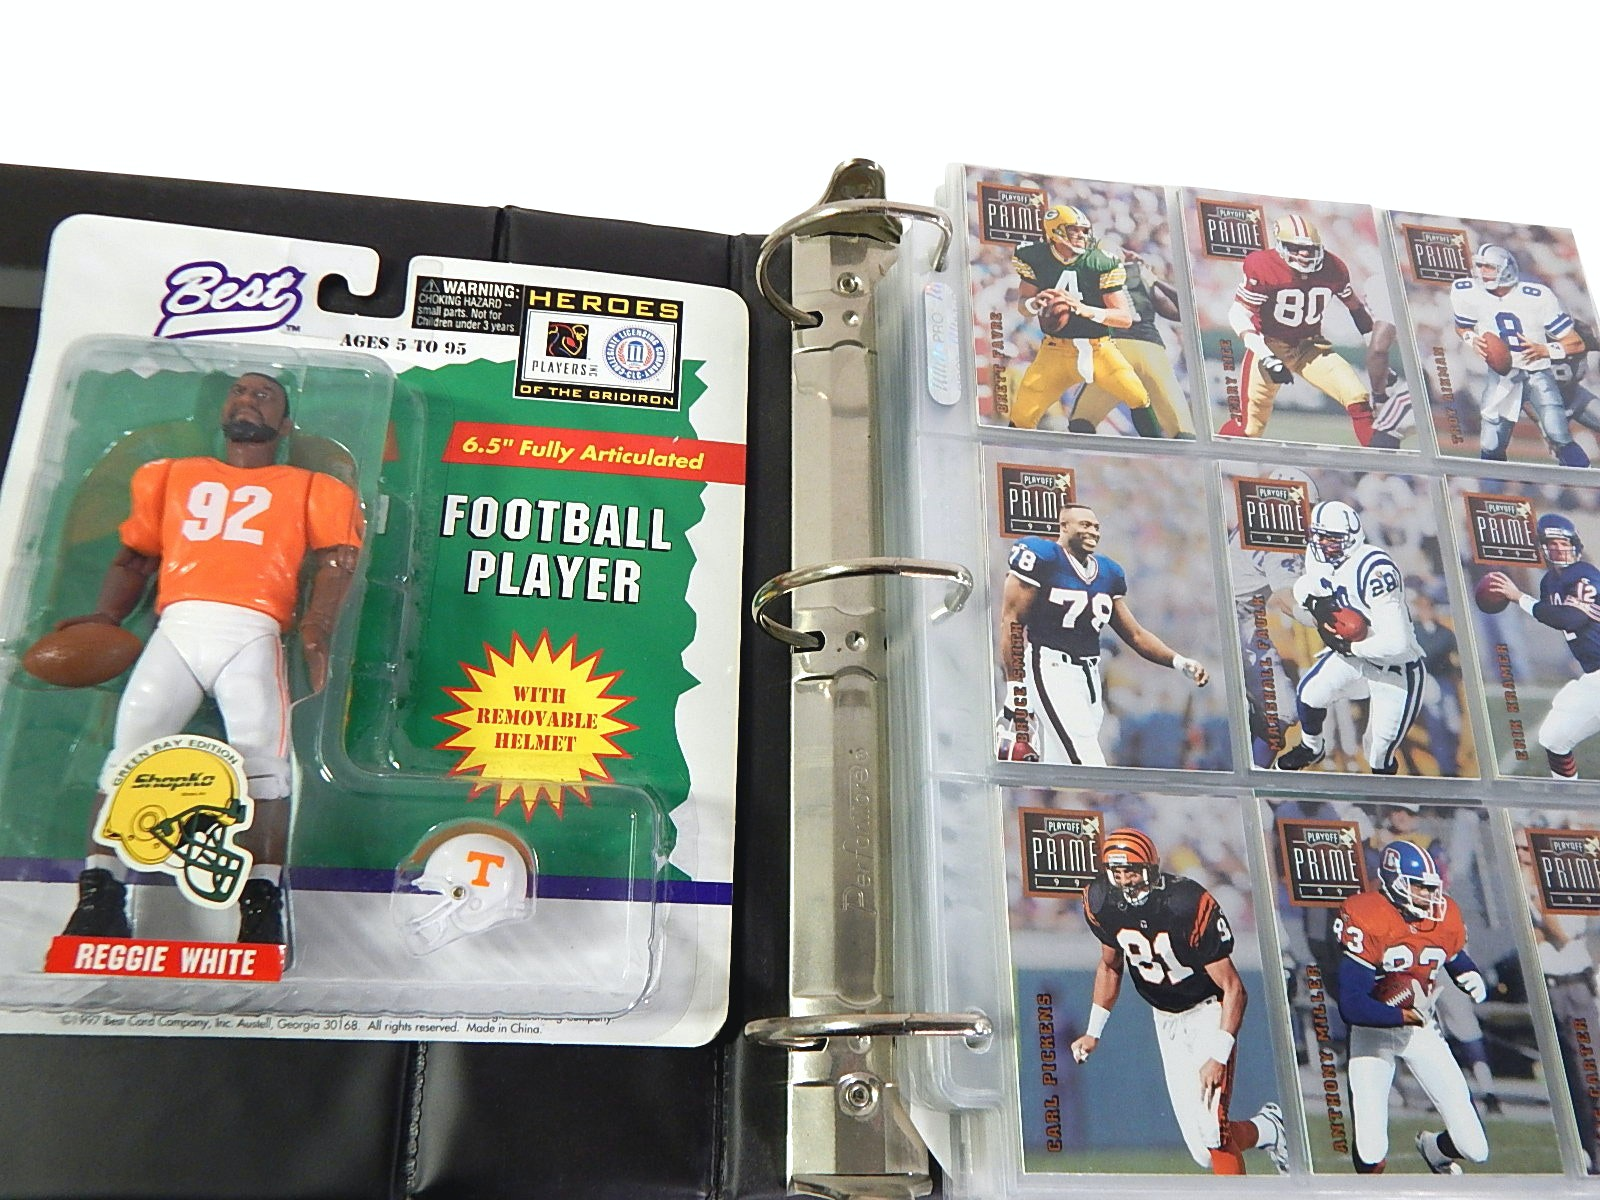 Football Card Binder with Over 300 Cards and Reggie White Action Figure